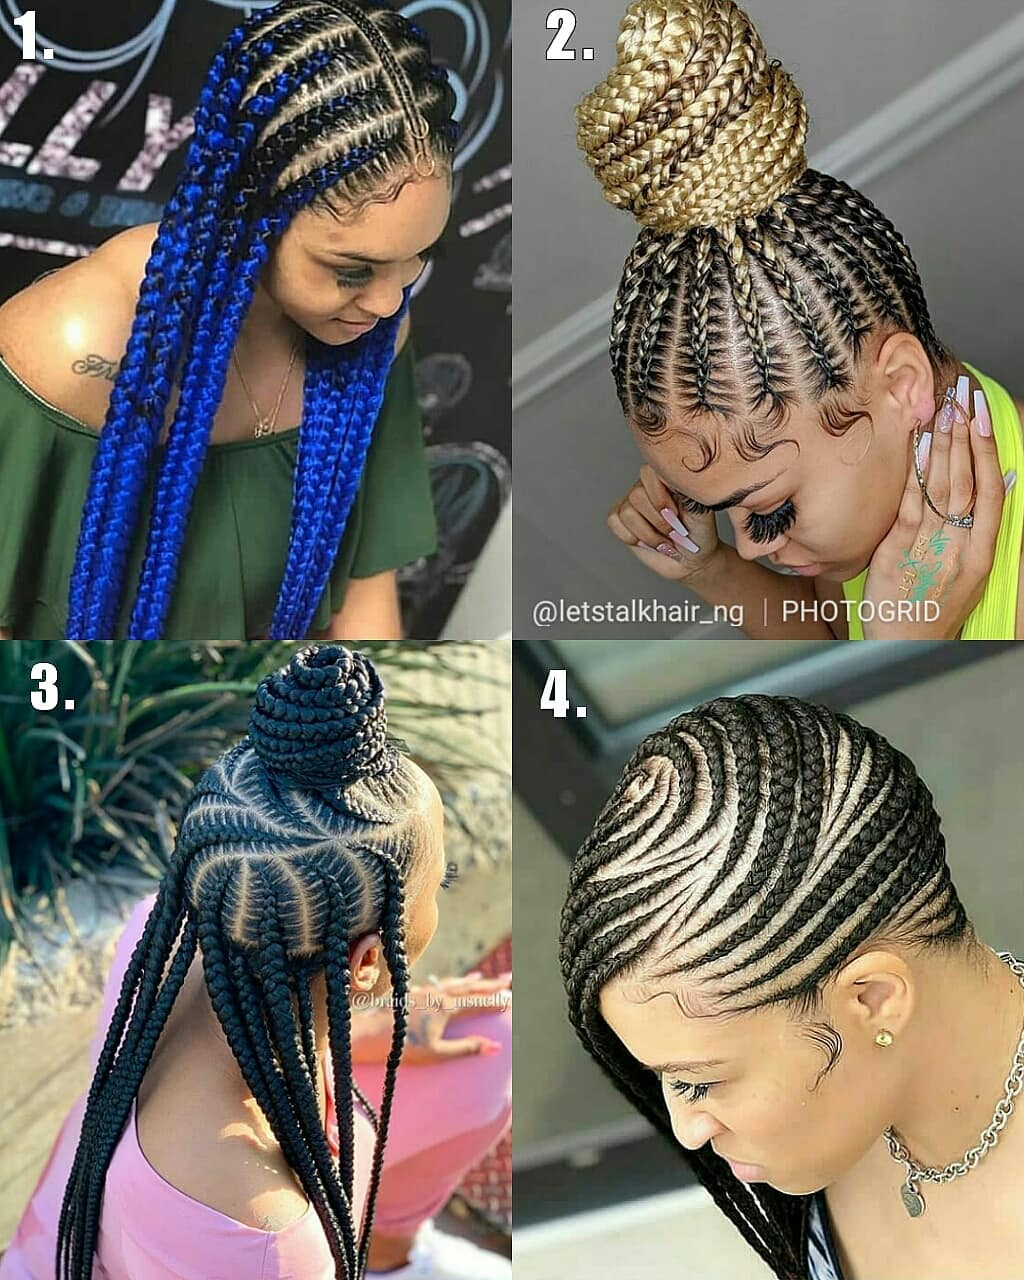 hairstyles july 144 1